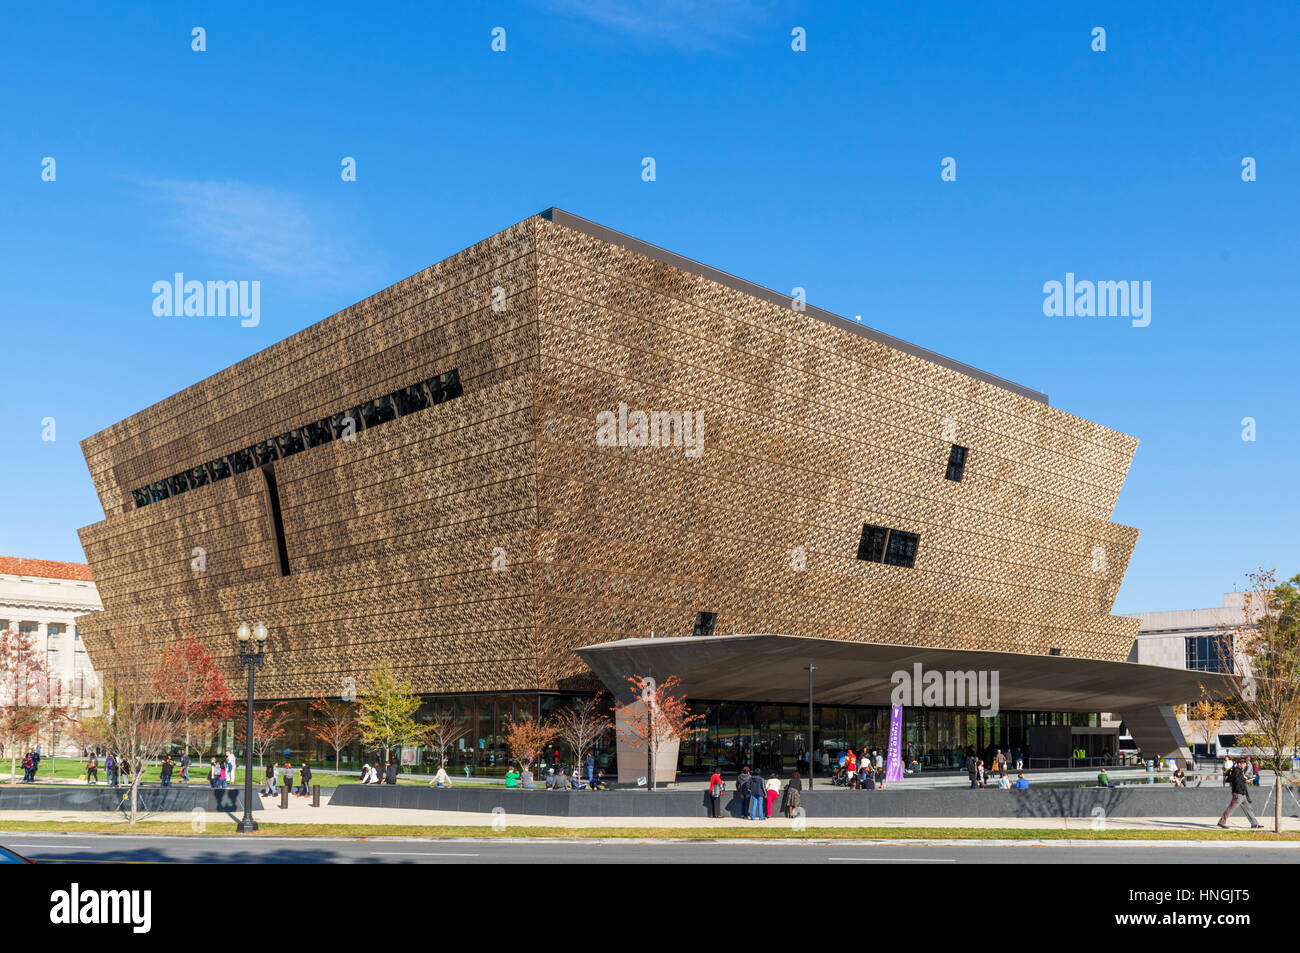 National Museum of African American History and Culture, National Mall, Washington DC, USA - Stock Image